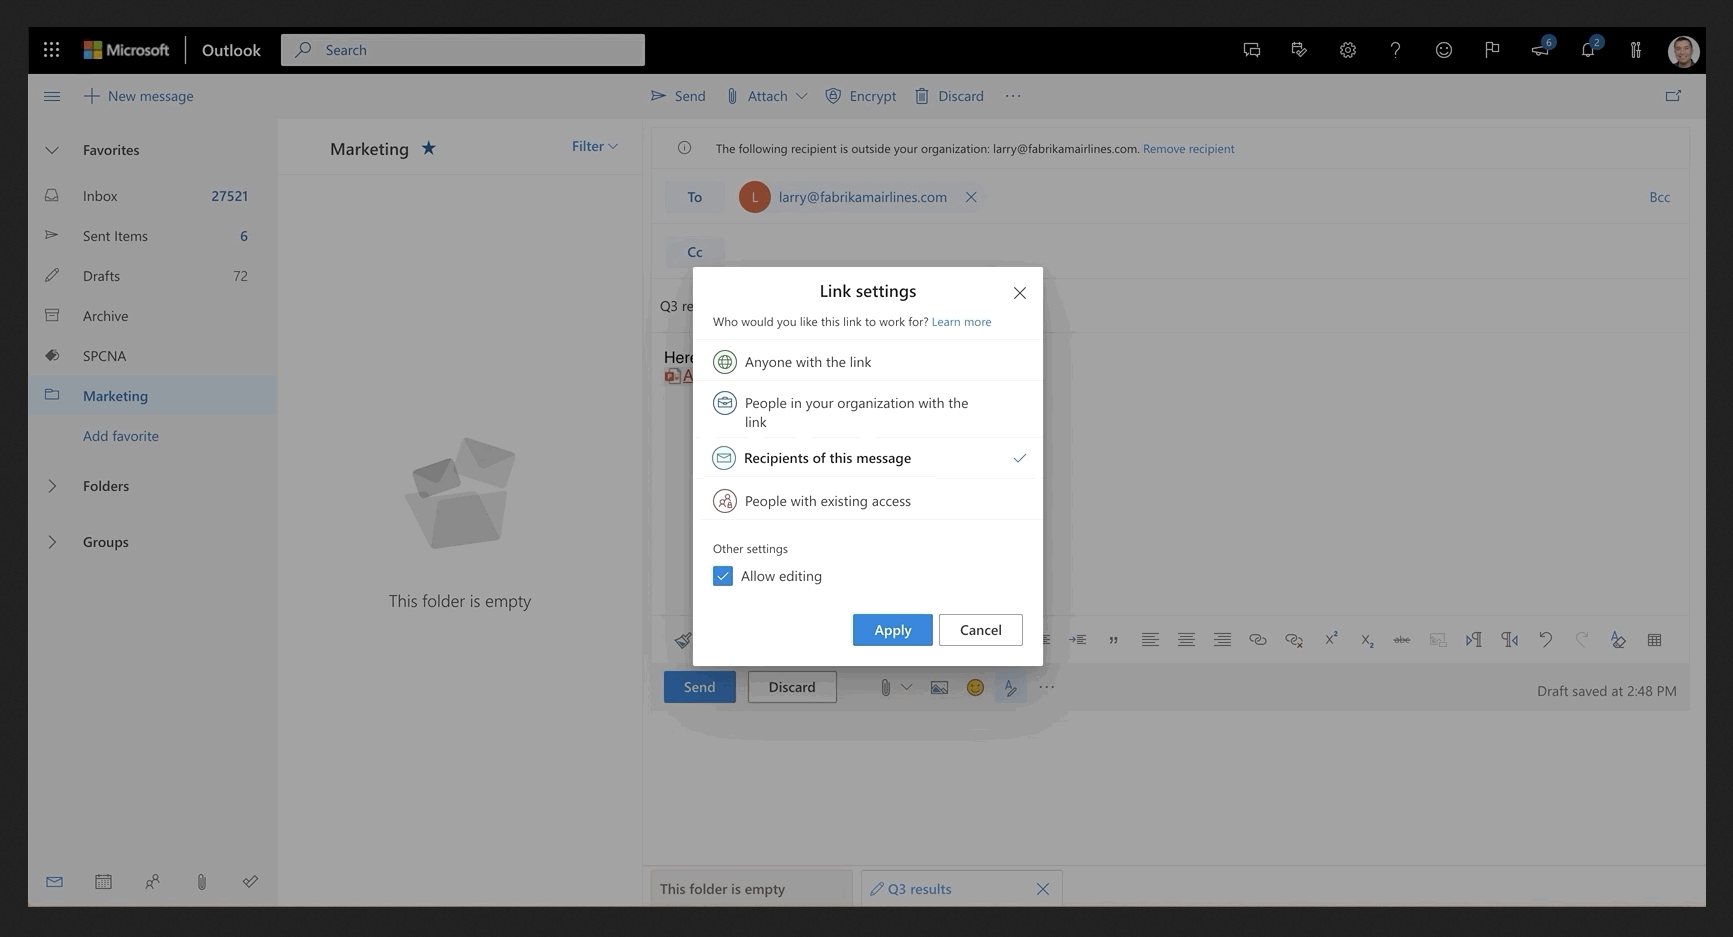 Image of a file shared in Outlook.